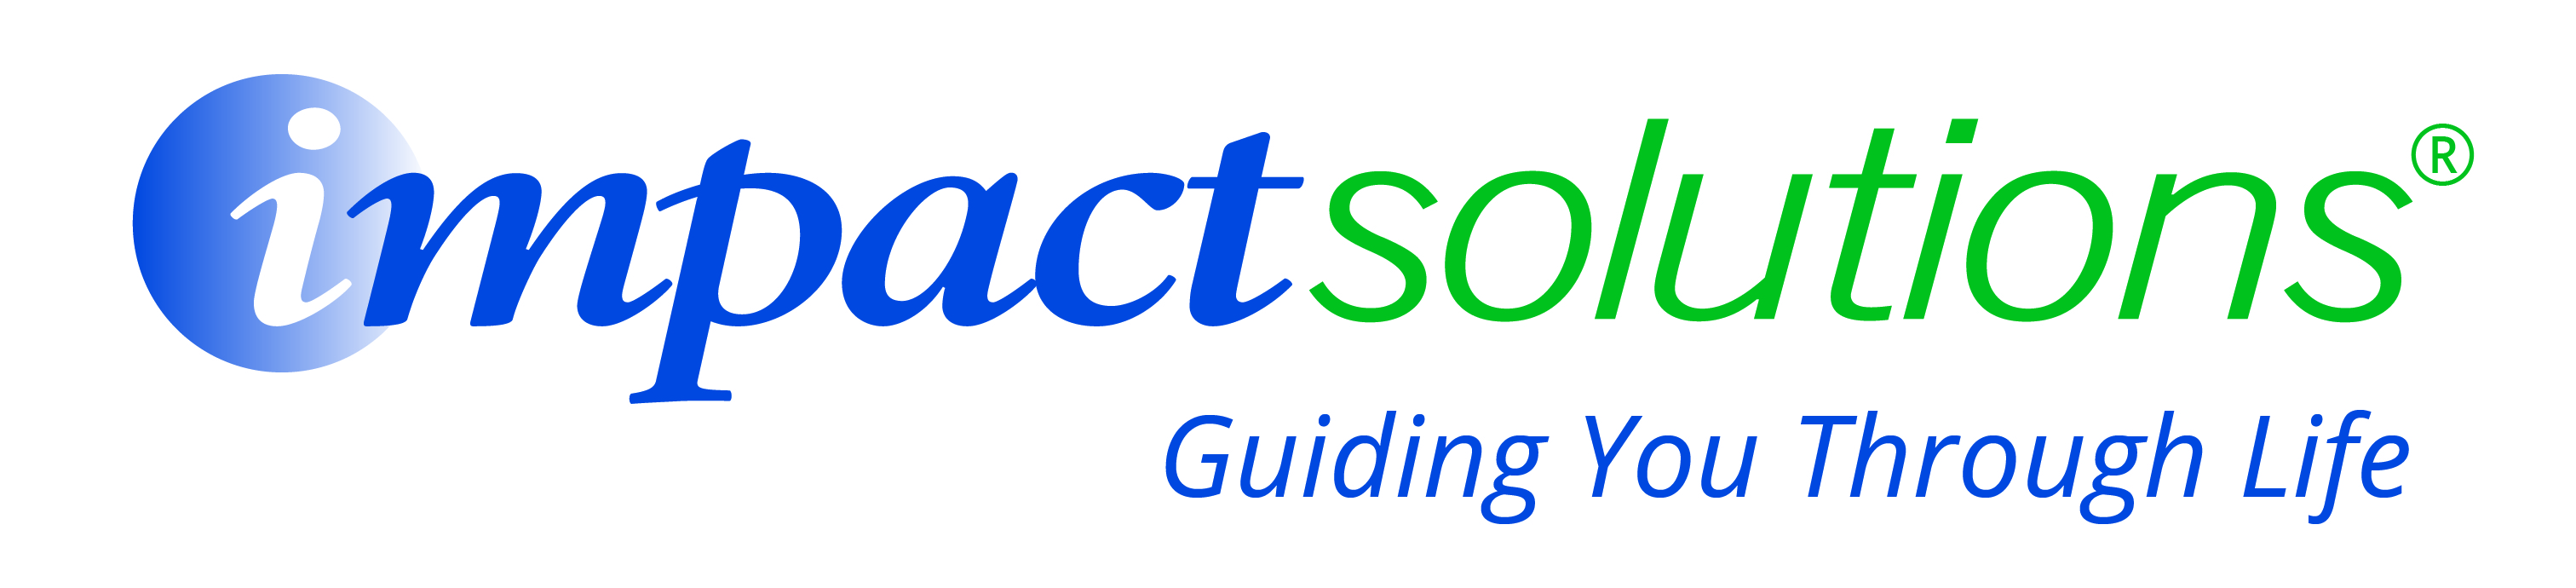 Impact Solutions-Guiding Your Through Life